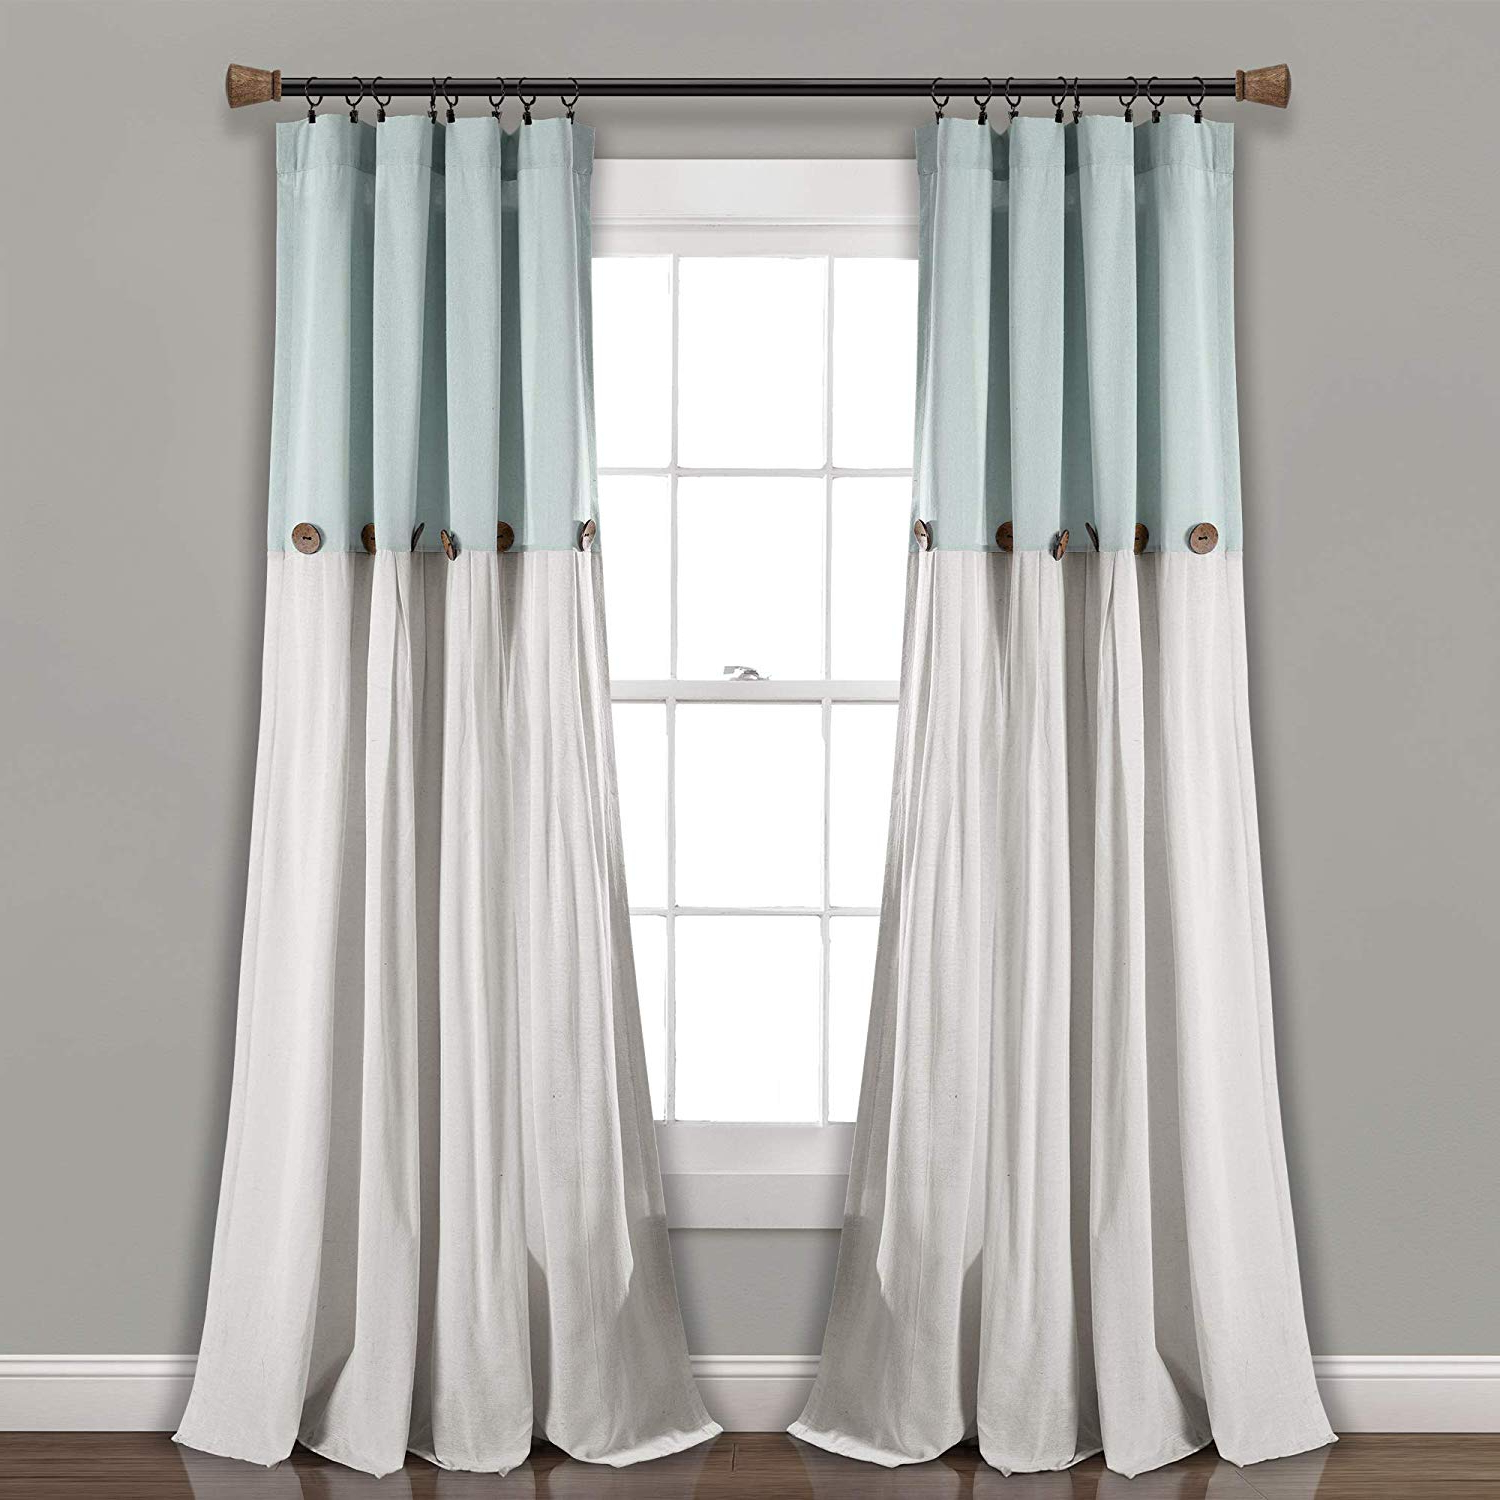 "Linen Button Window Curtains Single Panel Throughout 2021 Lush Decor Linen Button Window Curtain Single Panel, 84"" X 40"", Gray/white (View 2 of 20)"